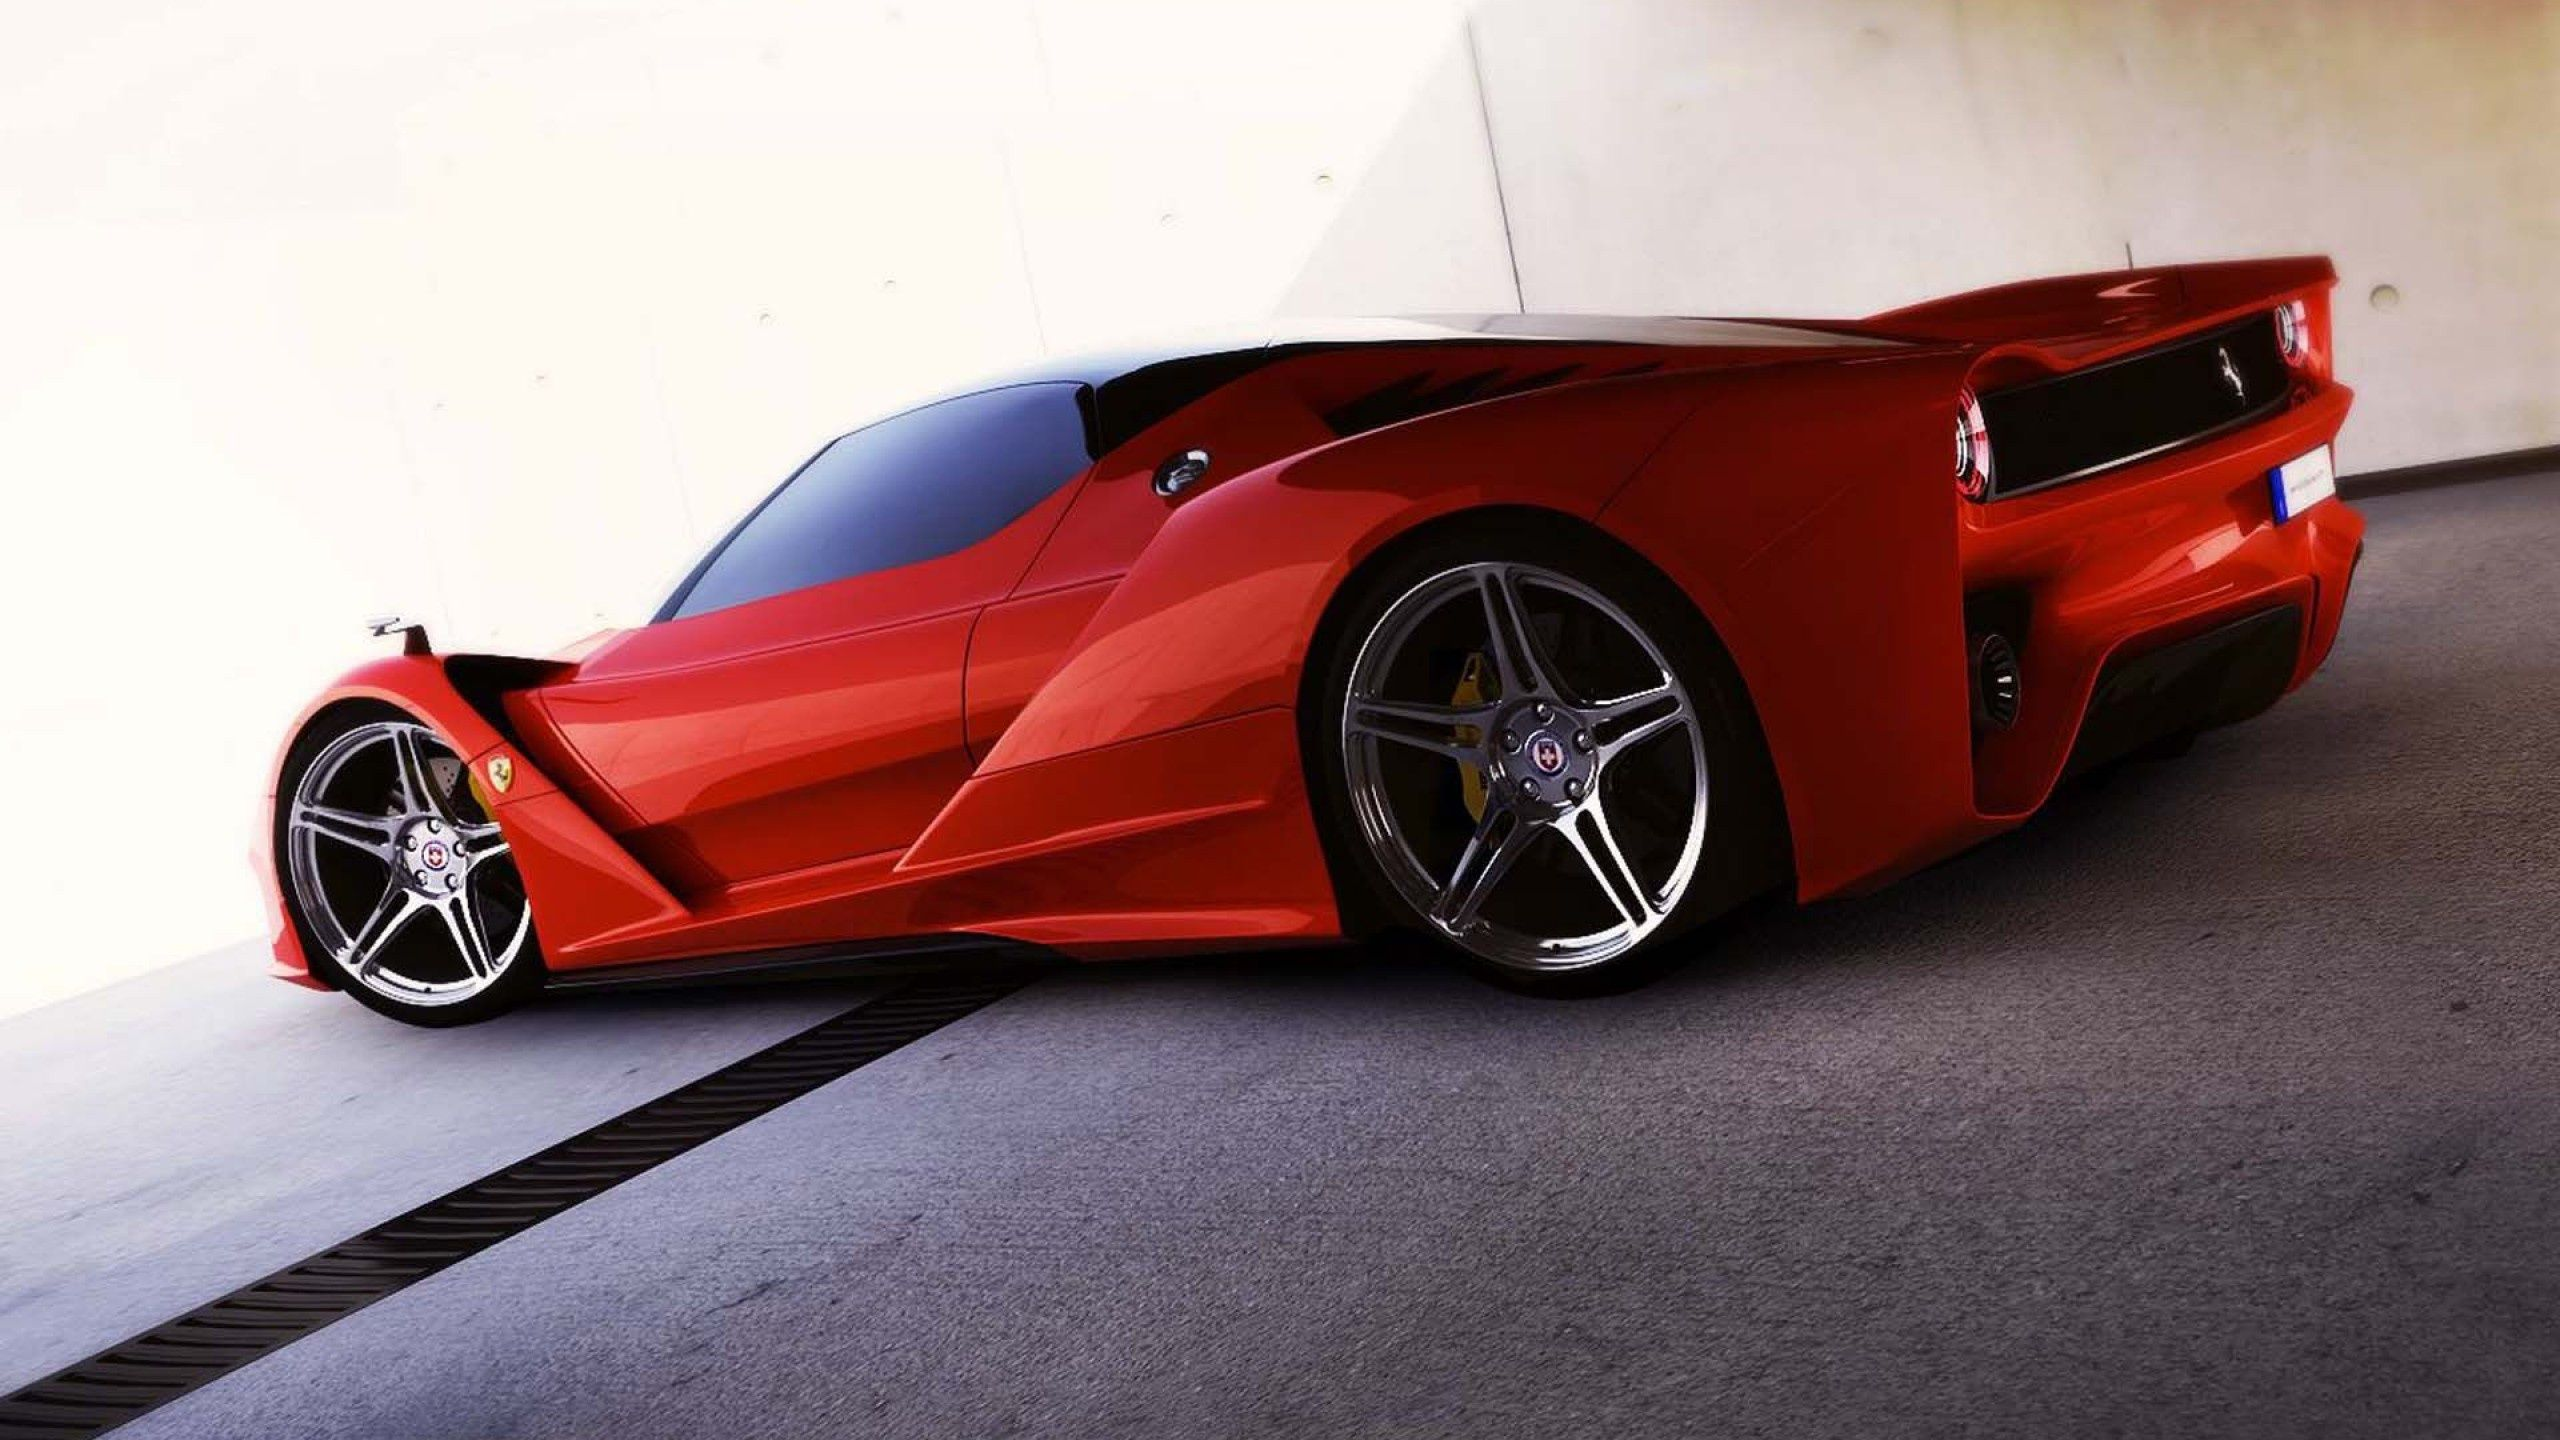 Dream Cars · Ferrari F70 Concept Supercar Hd Wallpapers ...